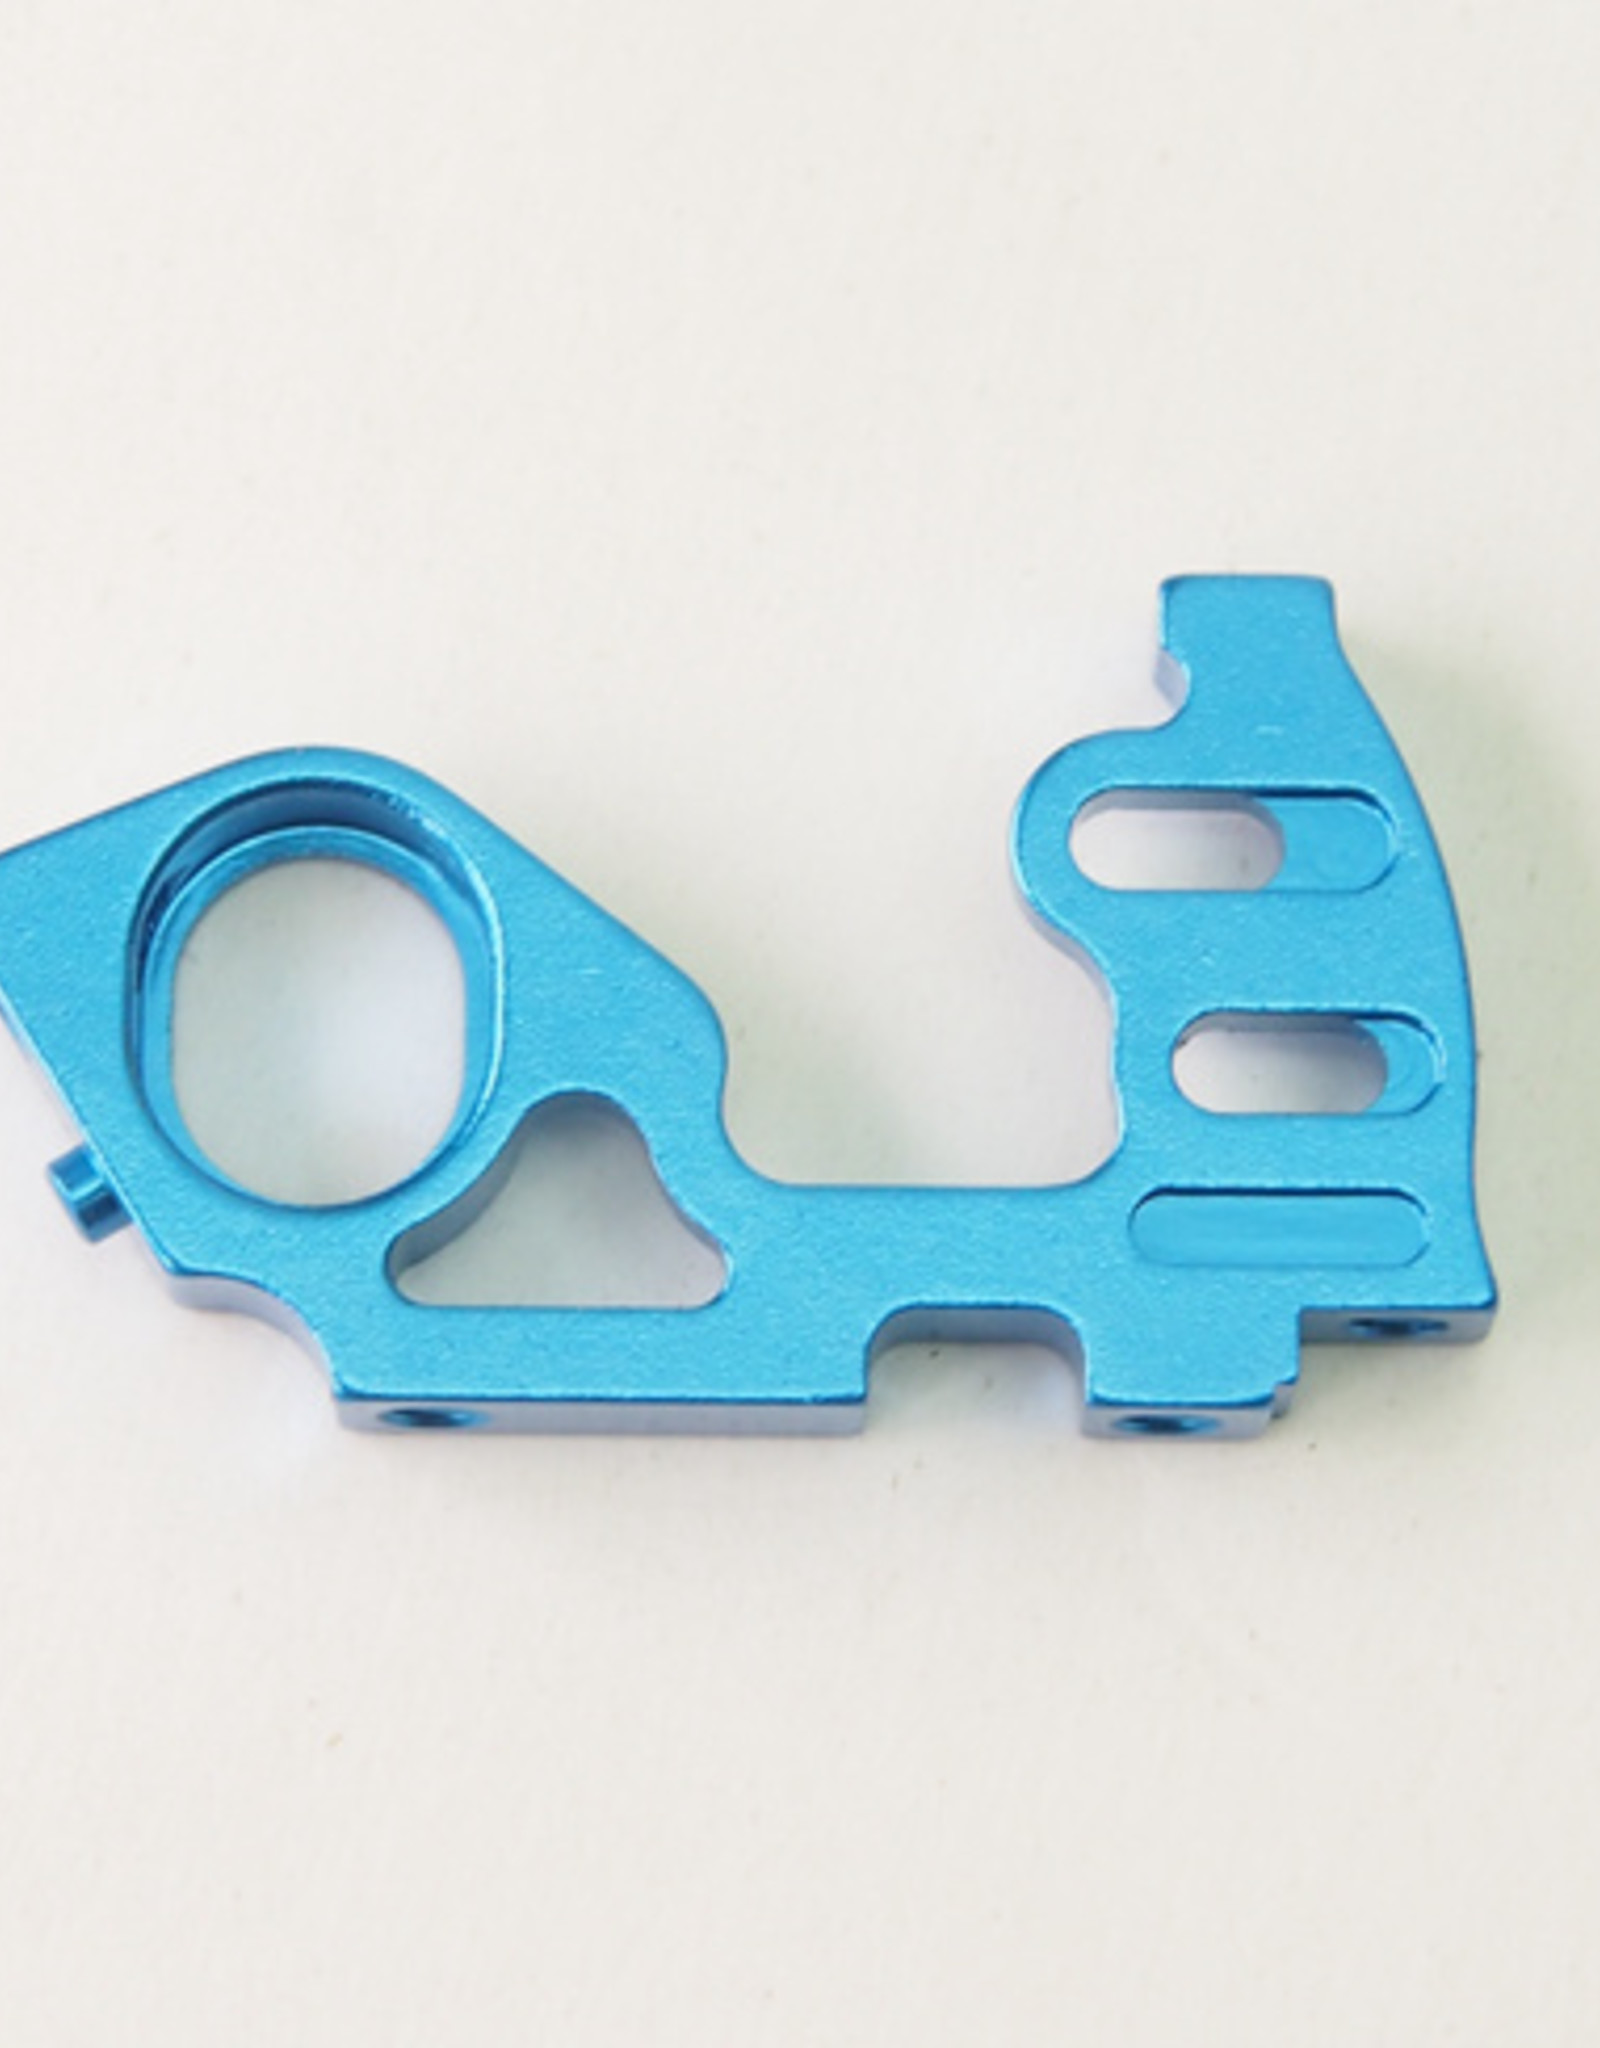 Pn Racing PN Racing Mini-Z V5 LCG Motor Mount Right Side Plate (Blue)